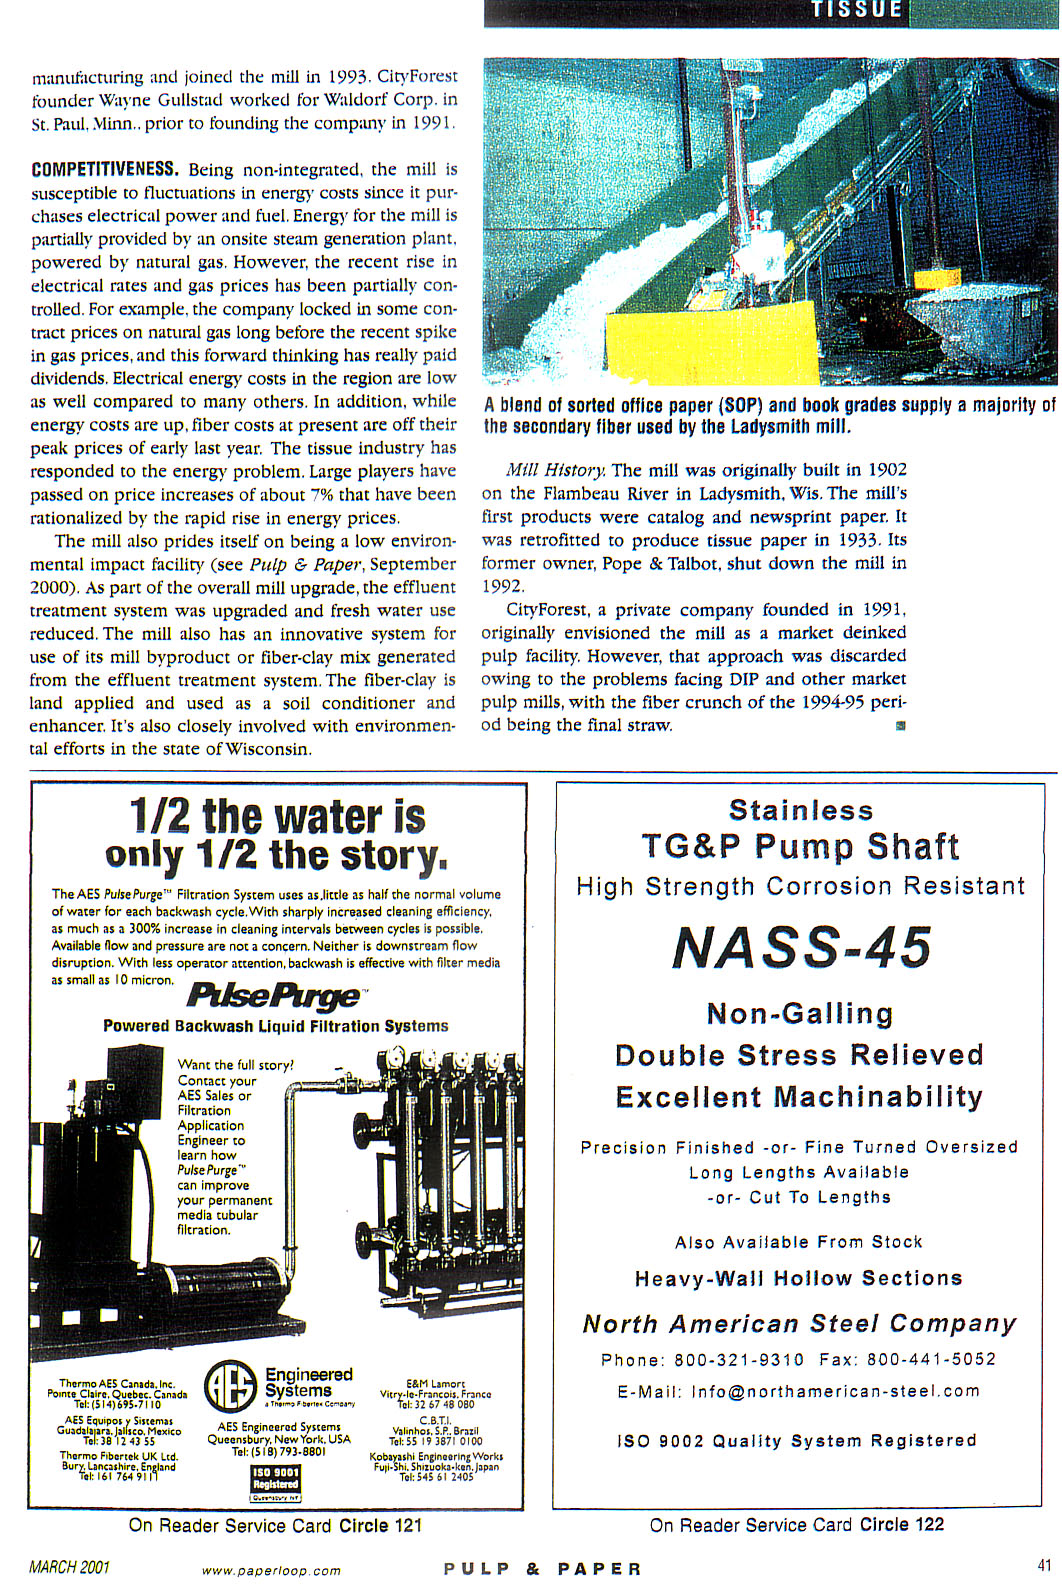 pulp & paper-march 2001-city forest revitalizes ladysmith mill with focus on niche tissue markets  page 3 (1).jpg